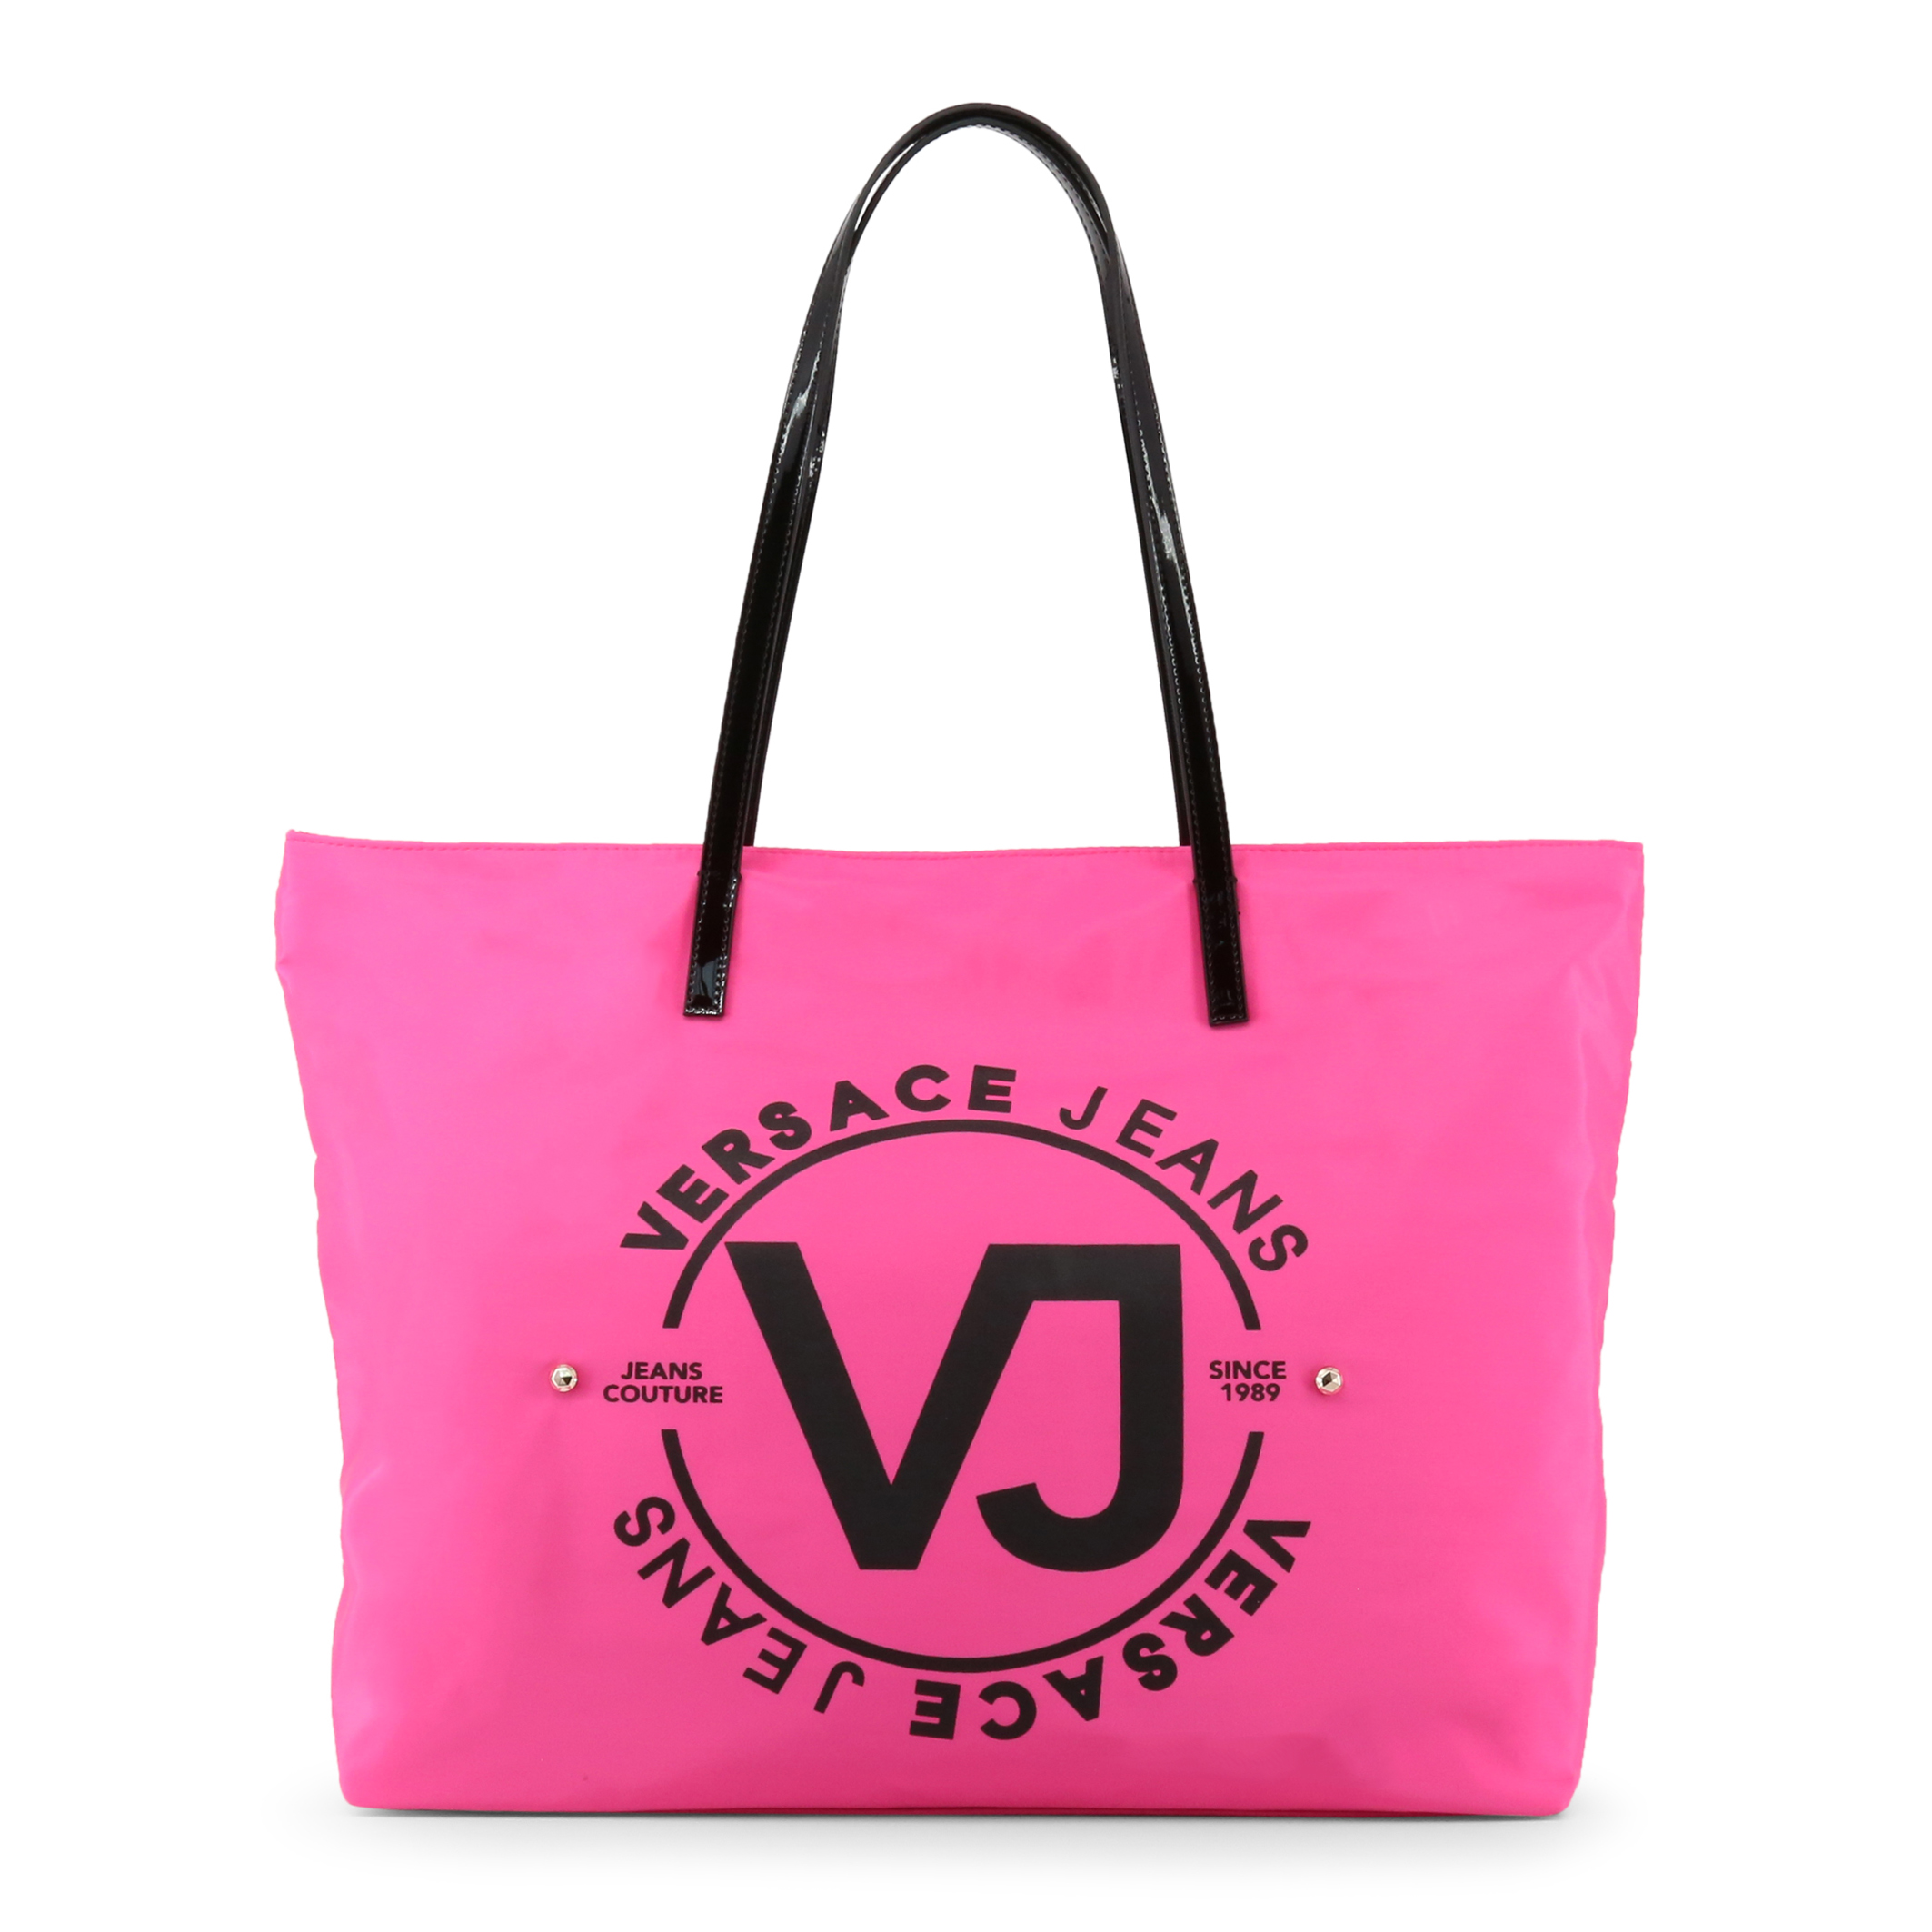 9ab5bf6117 Details about Versace Jeans E1VTBB60_71115 Women Pink 100937 Bags Shopping  bags